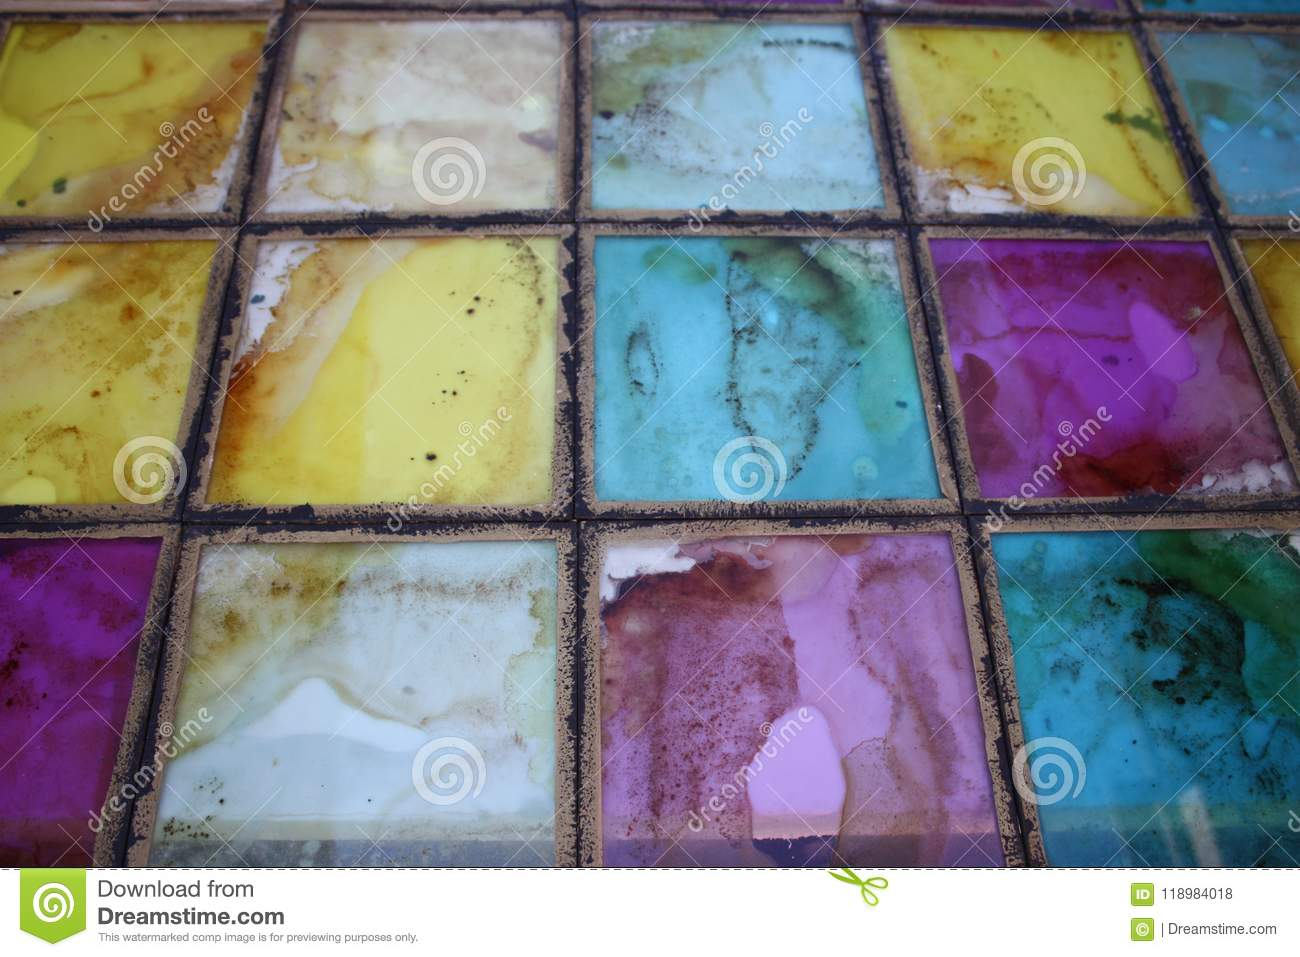 The texture of the colored glass stained glass tile